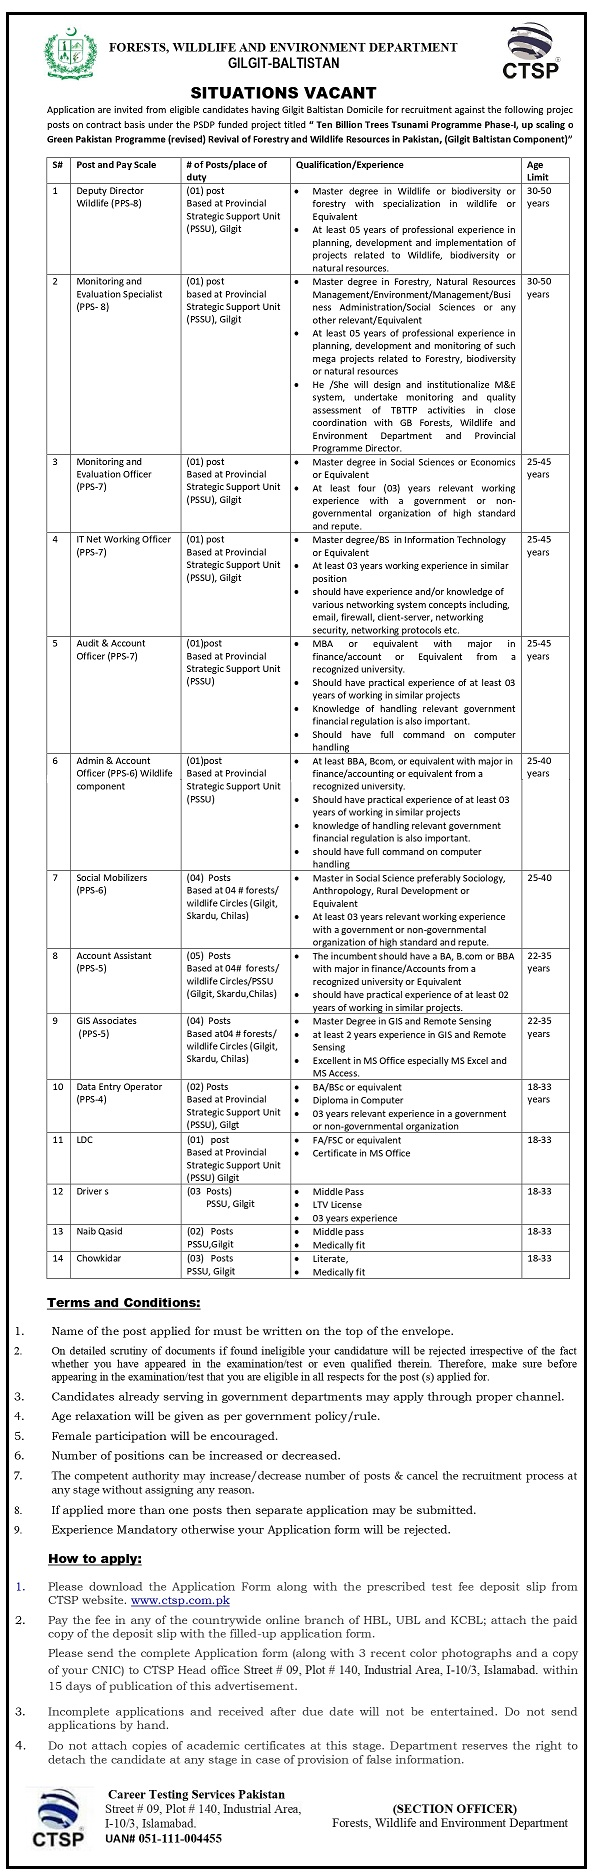 Forests Wildlife and Environment Department CTSP Jobs 2020 Registration Form Challan Form